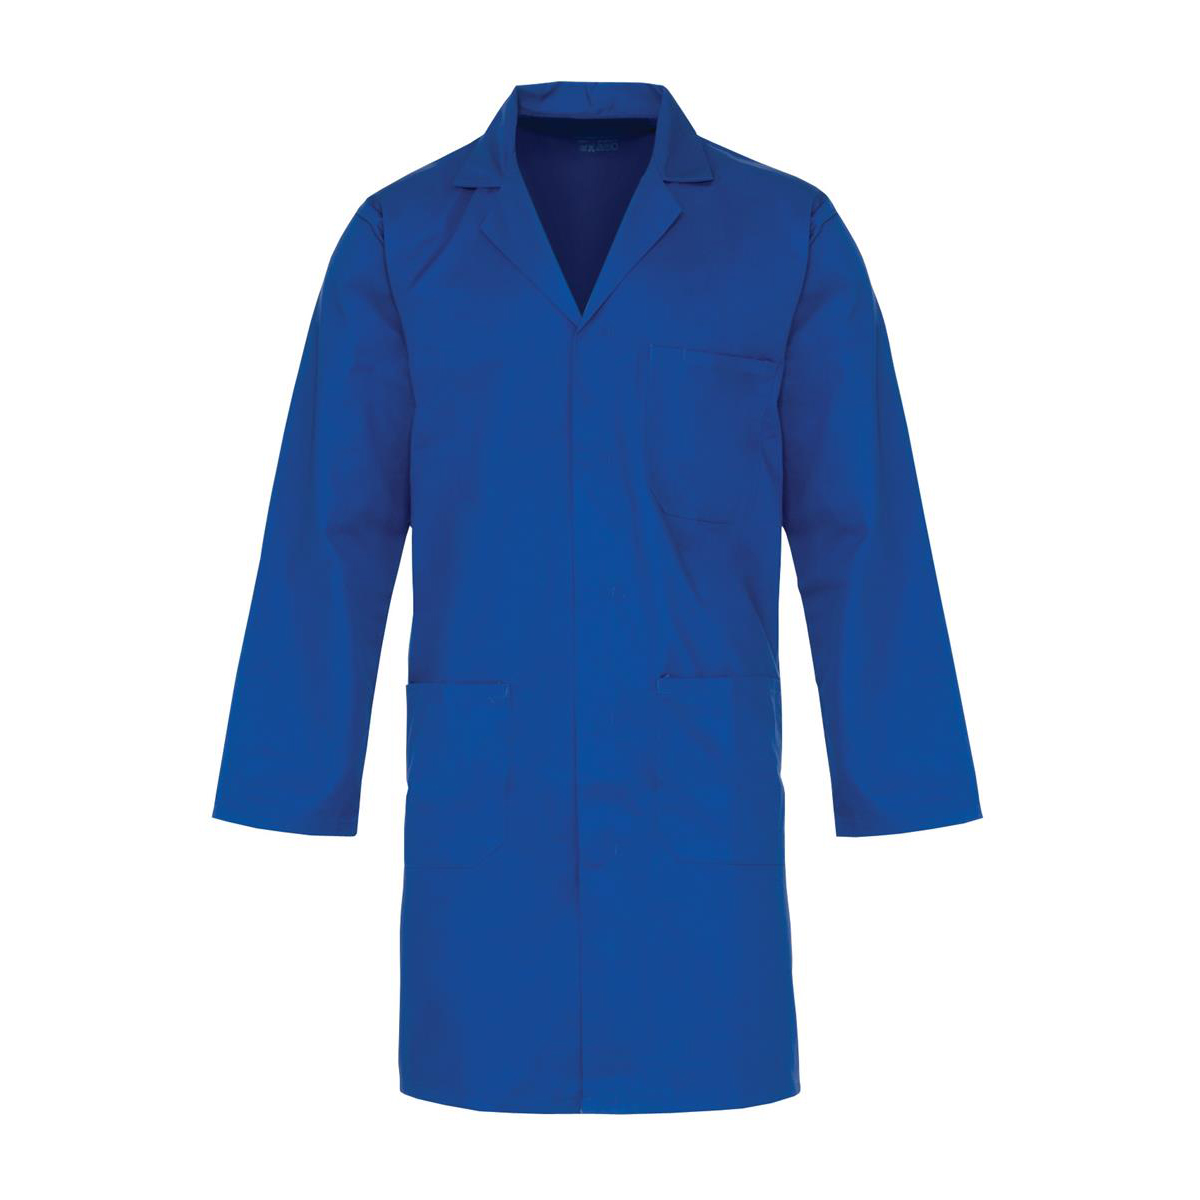 Safety Click Lab Coat Polycotton with 3 Pockets 3XL Navy Ref PCWCN52 *Approx 3 Day Leadtime*